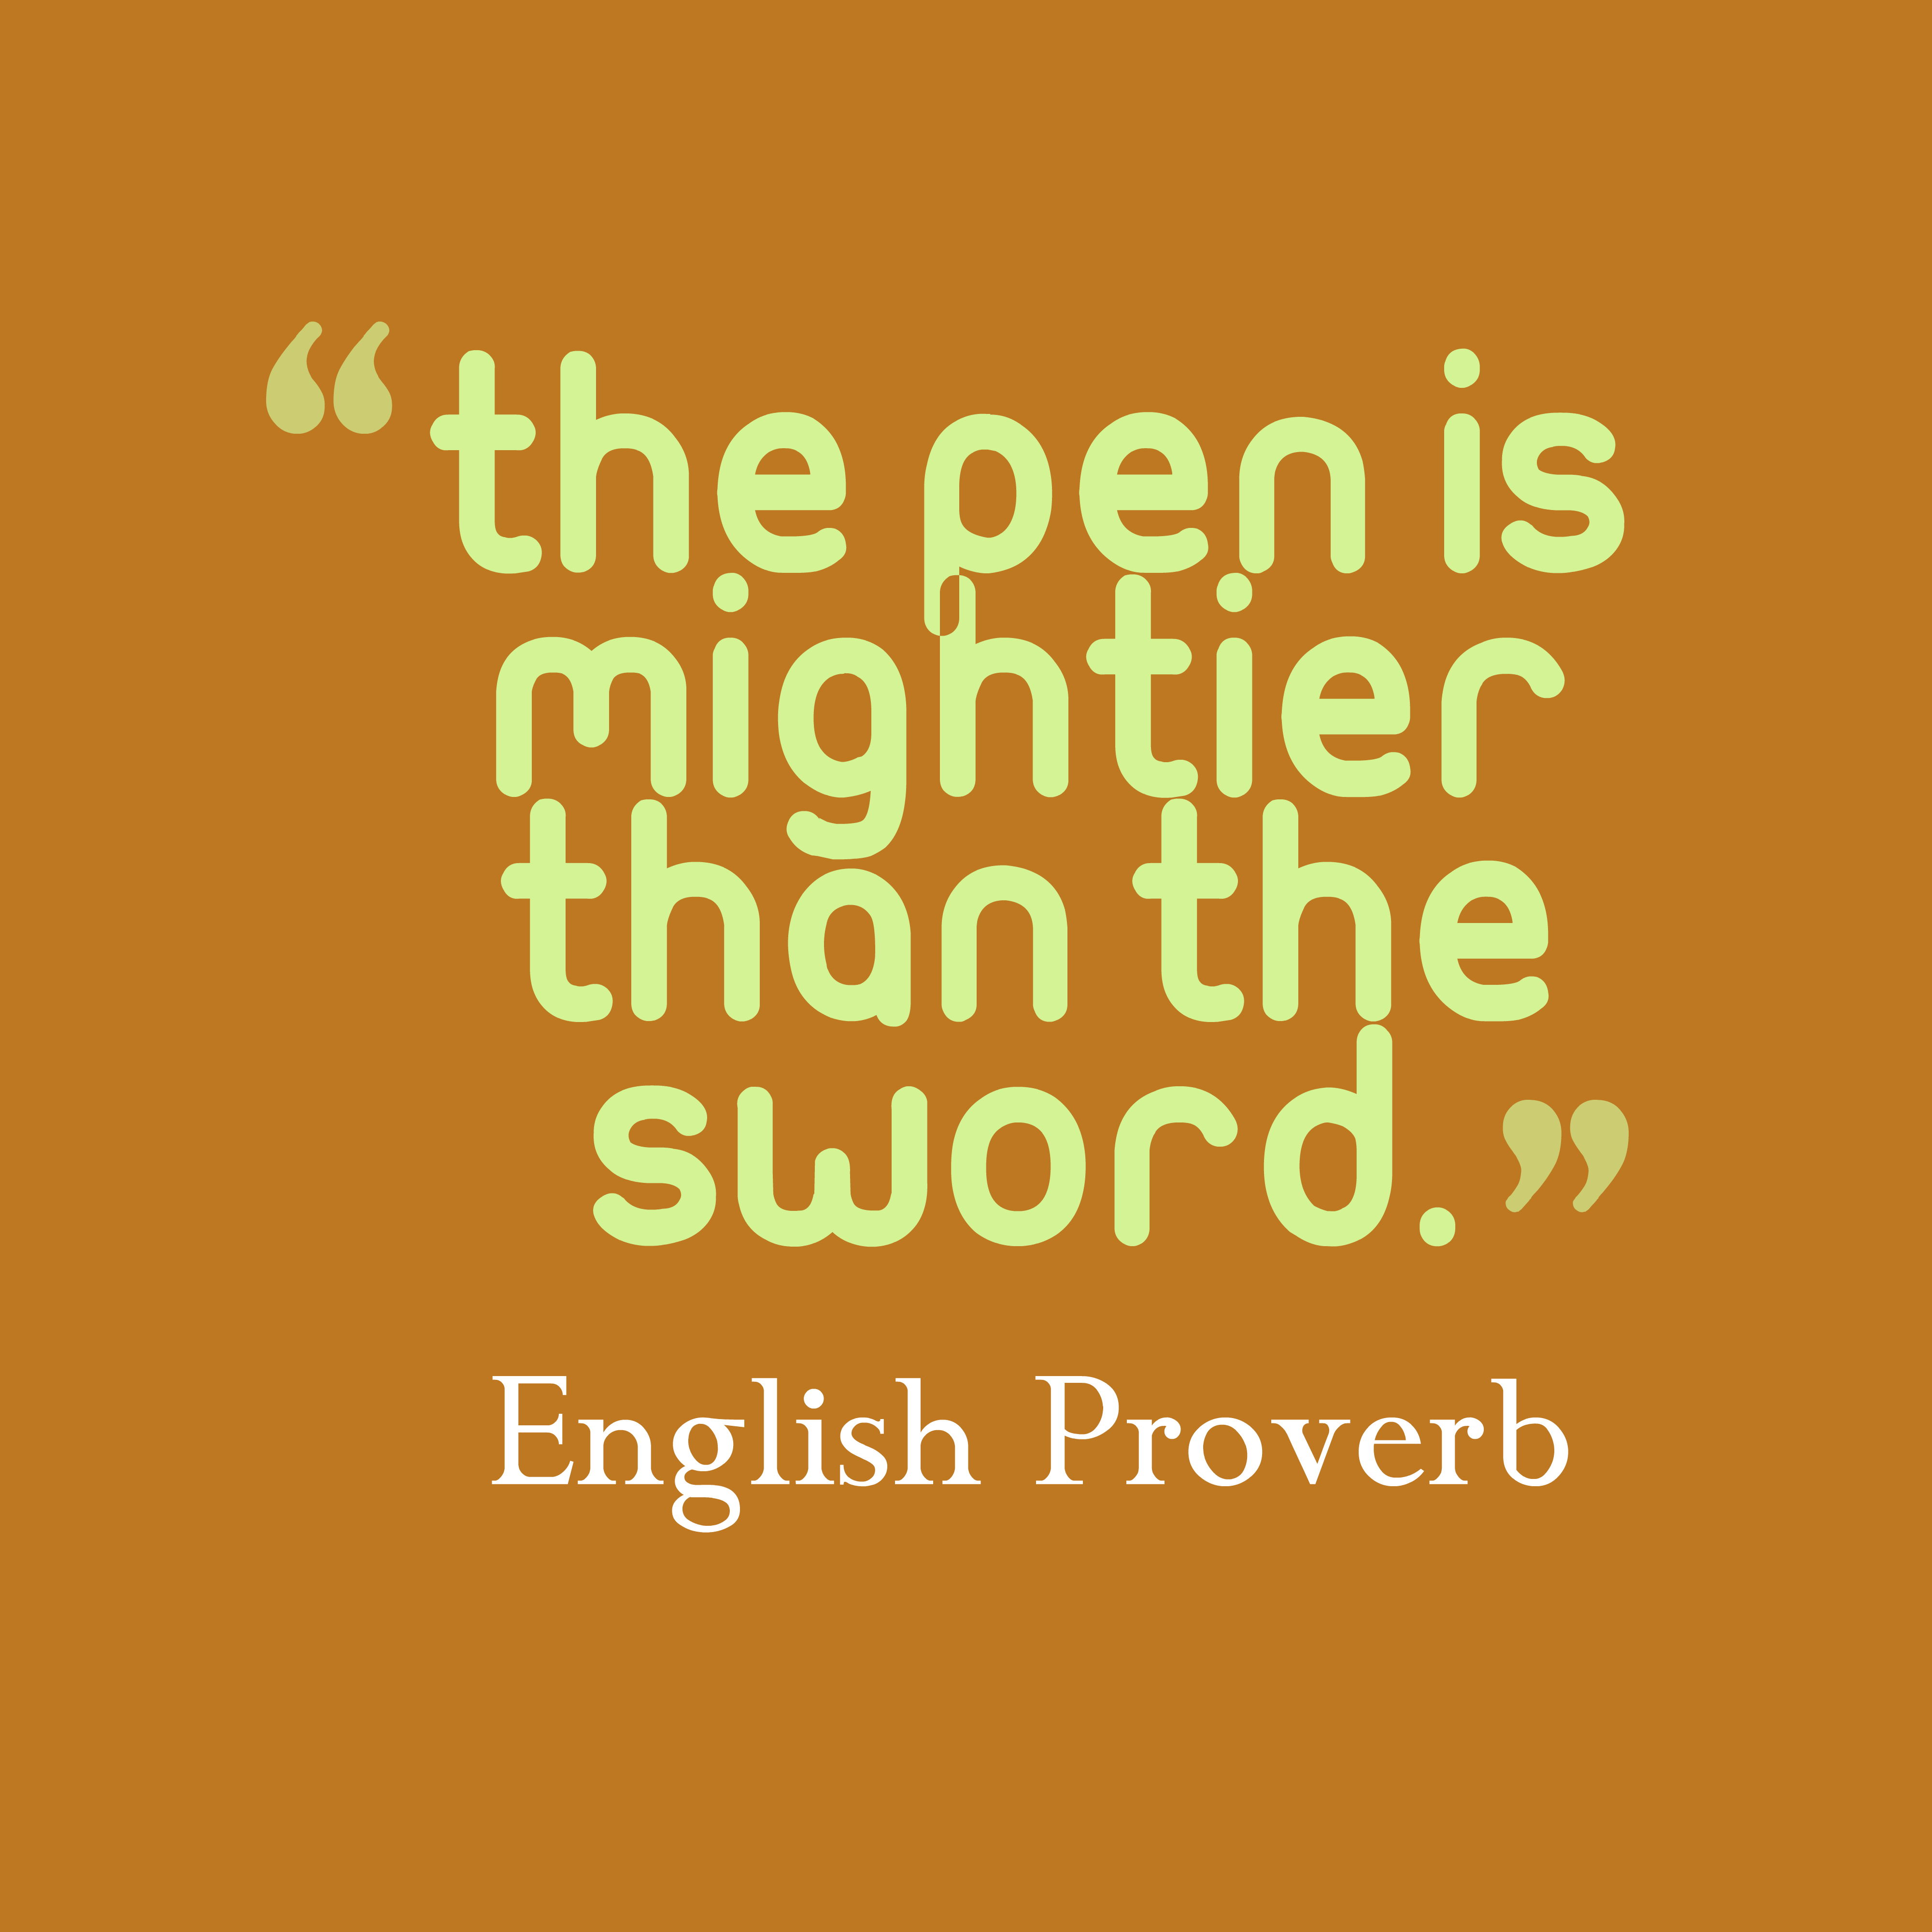 essay on pen is not always mightier than the sword The pen is mightier than the sword  a presidential candidate just said that  during a televised debate, but he's clearly playing dumb and.